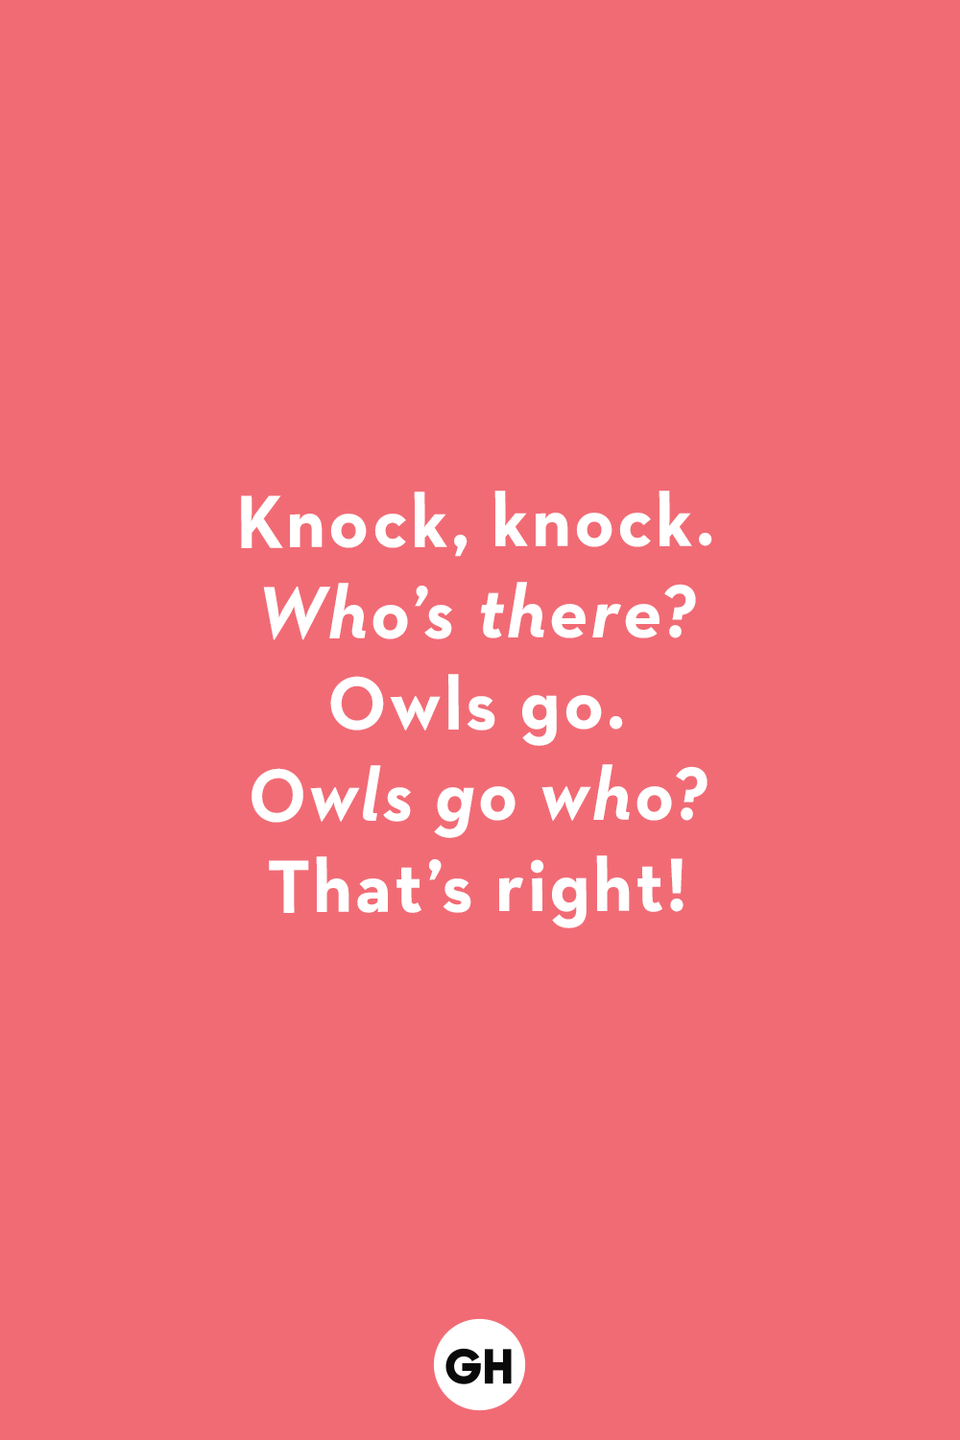 <p><em>Who's there?</em><br></p><p>Owls go.</p><p><em>Owls go who?</em></p><p>That's right!</p>